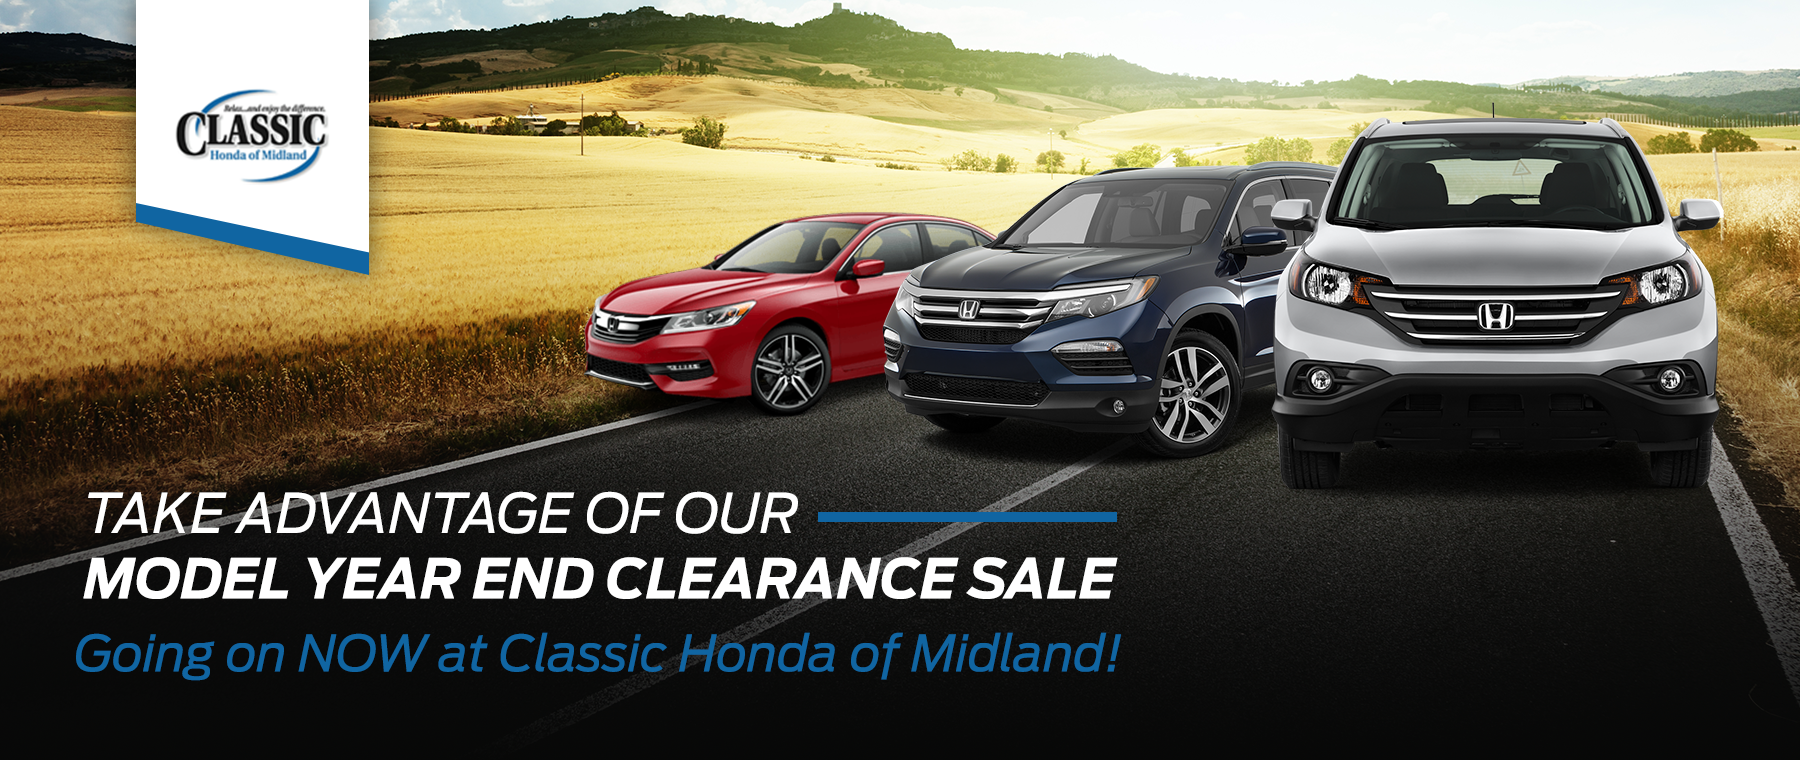 2017 Model Year End Clearance Sale Event at Classic Honda of Midland, TX